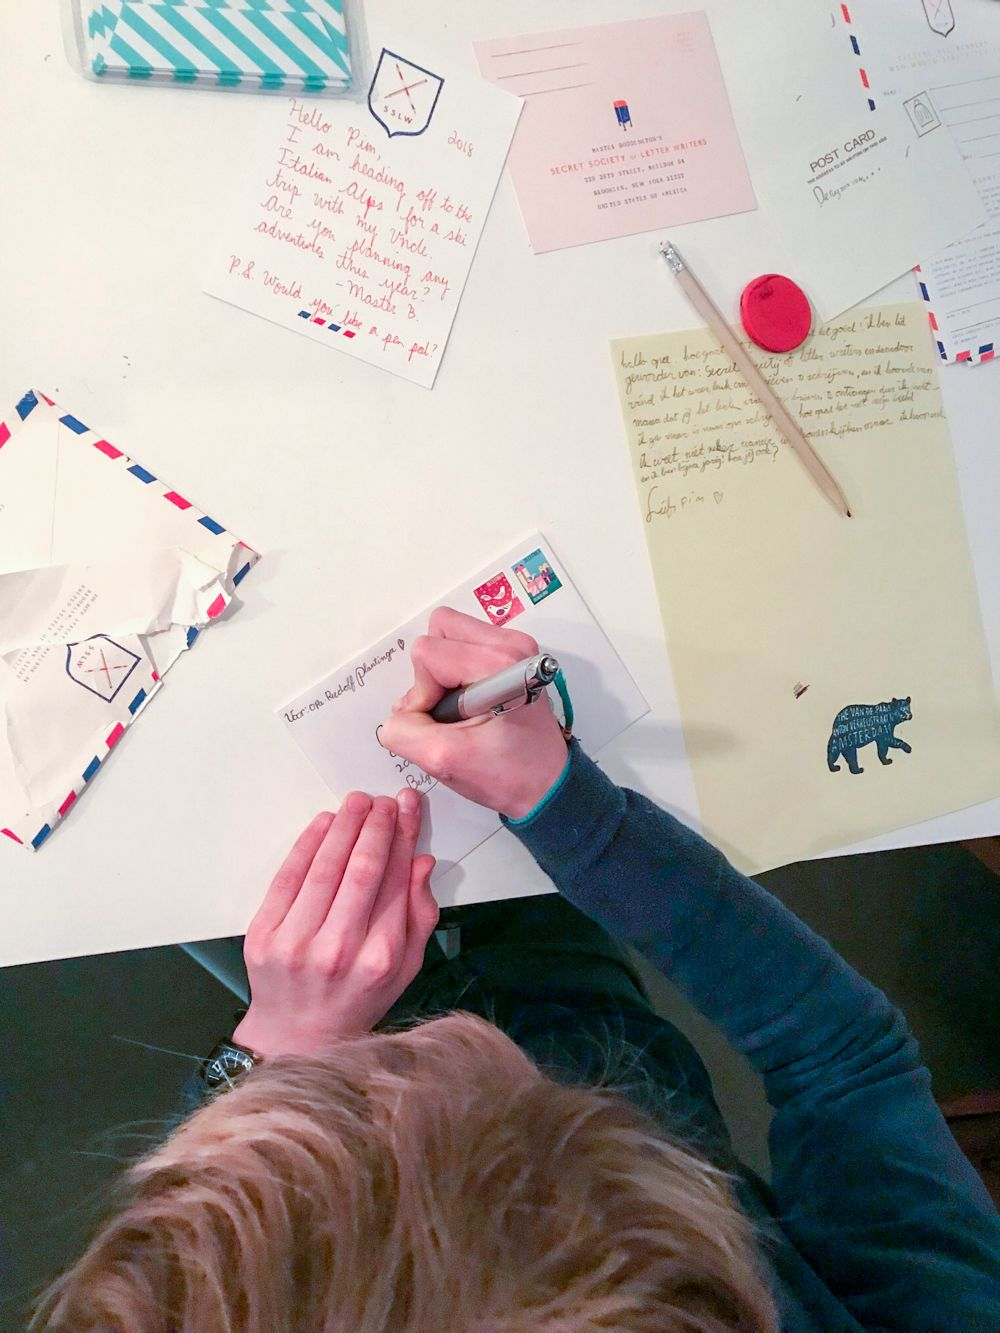 The Secret Society of Letter Writers has been created by Mr Boddington to 'honour and protect the hand-written letter'. Pim (who's 10) applied and is now a member!